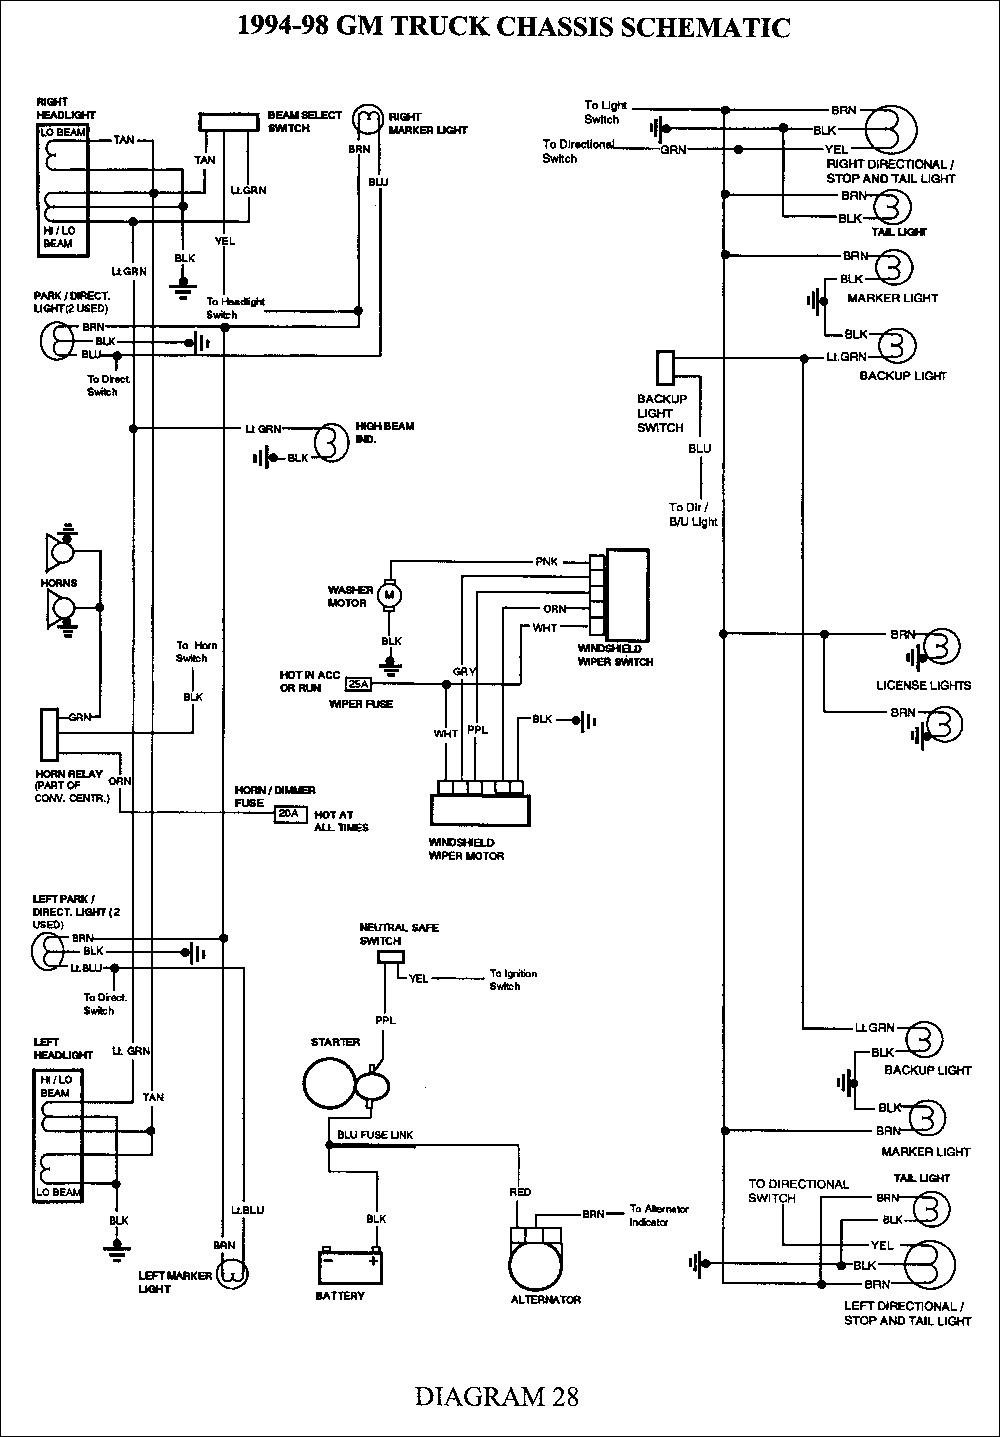 wiring diagram for 98 astro van wiring diagram data rh 8 15 10 reisen fuer meister de